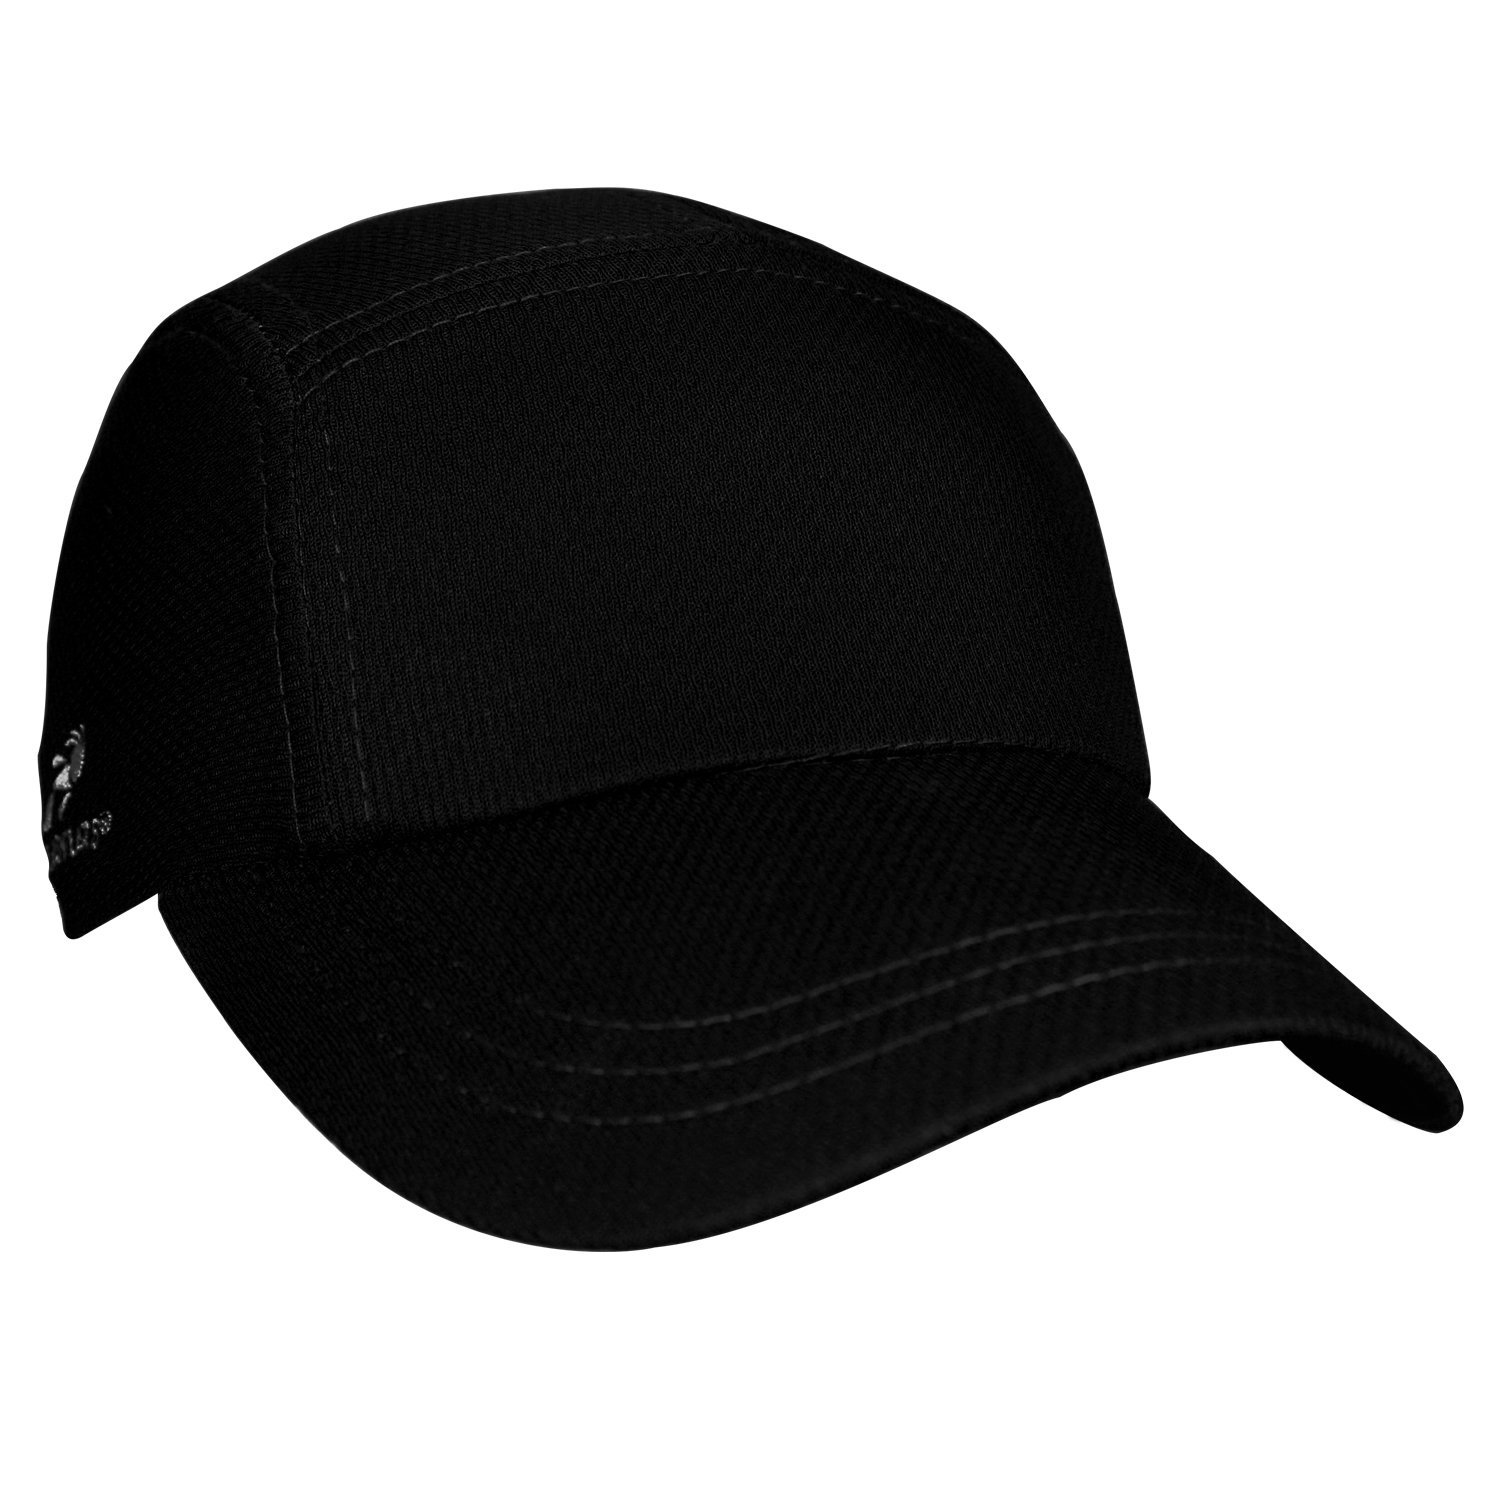 Caps PNG Black And White - 136444